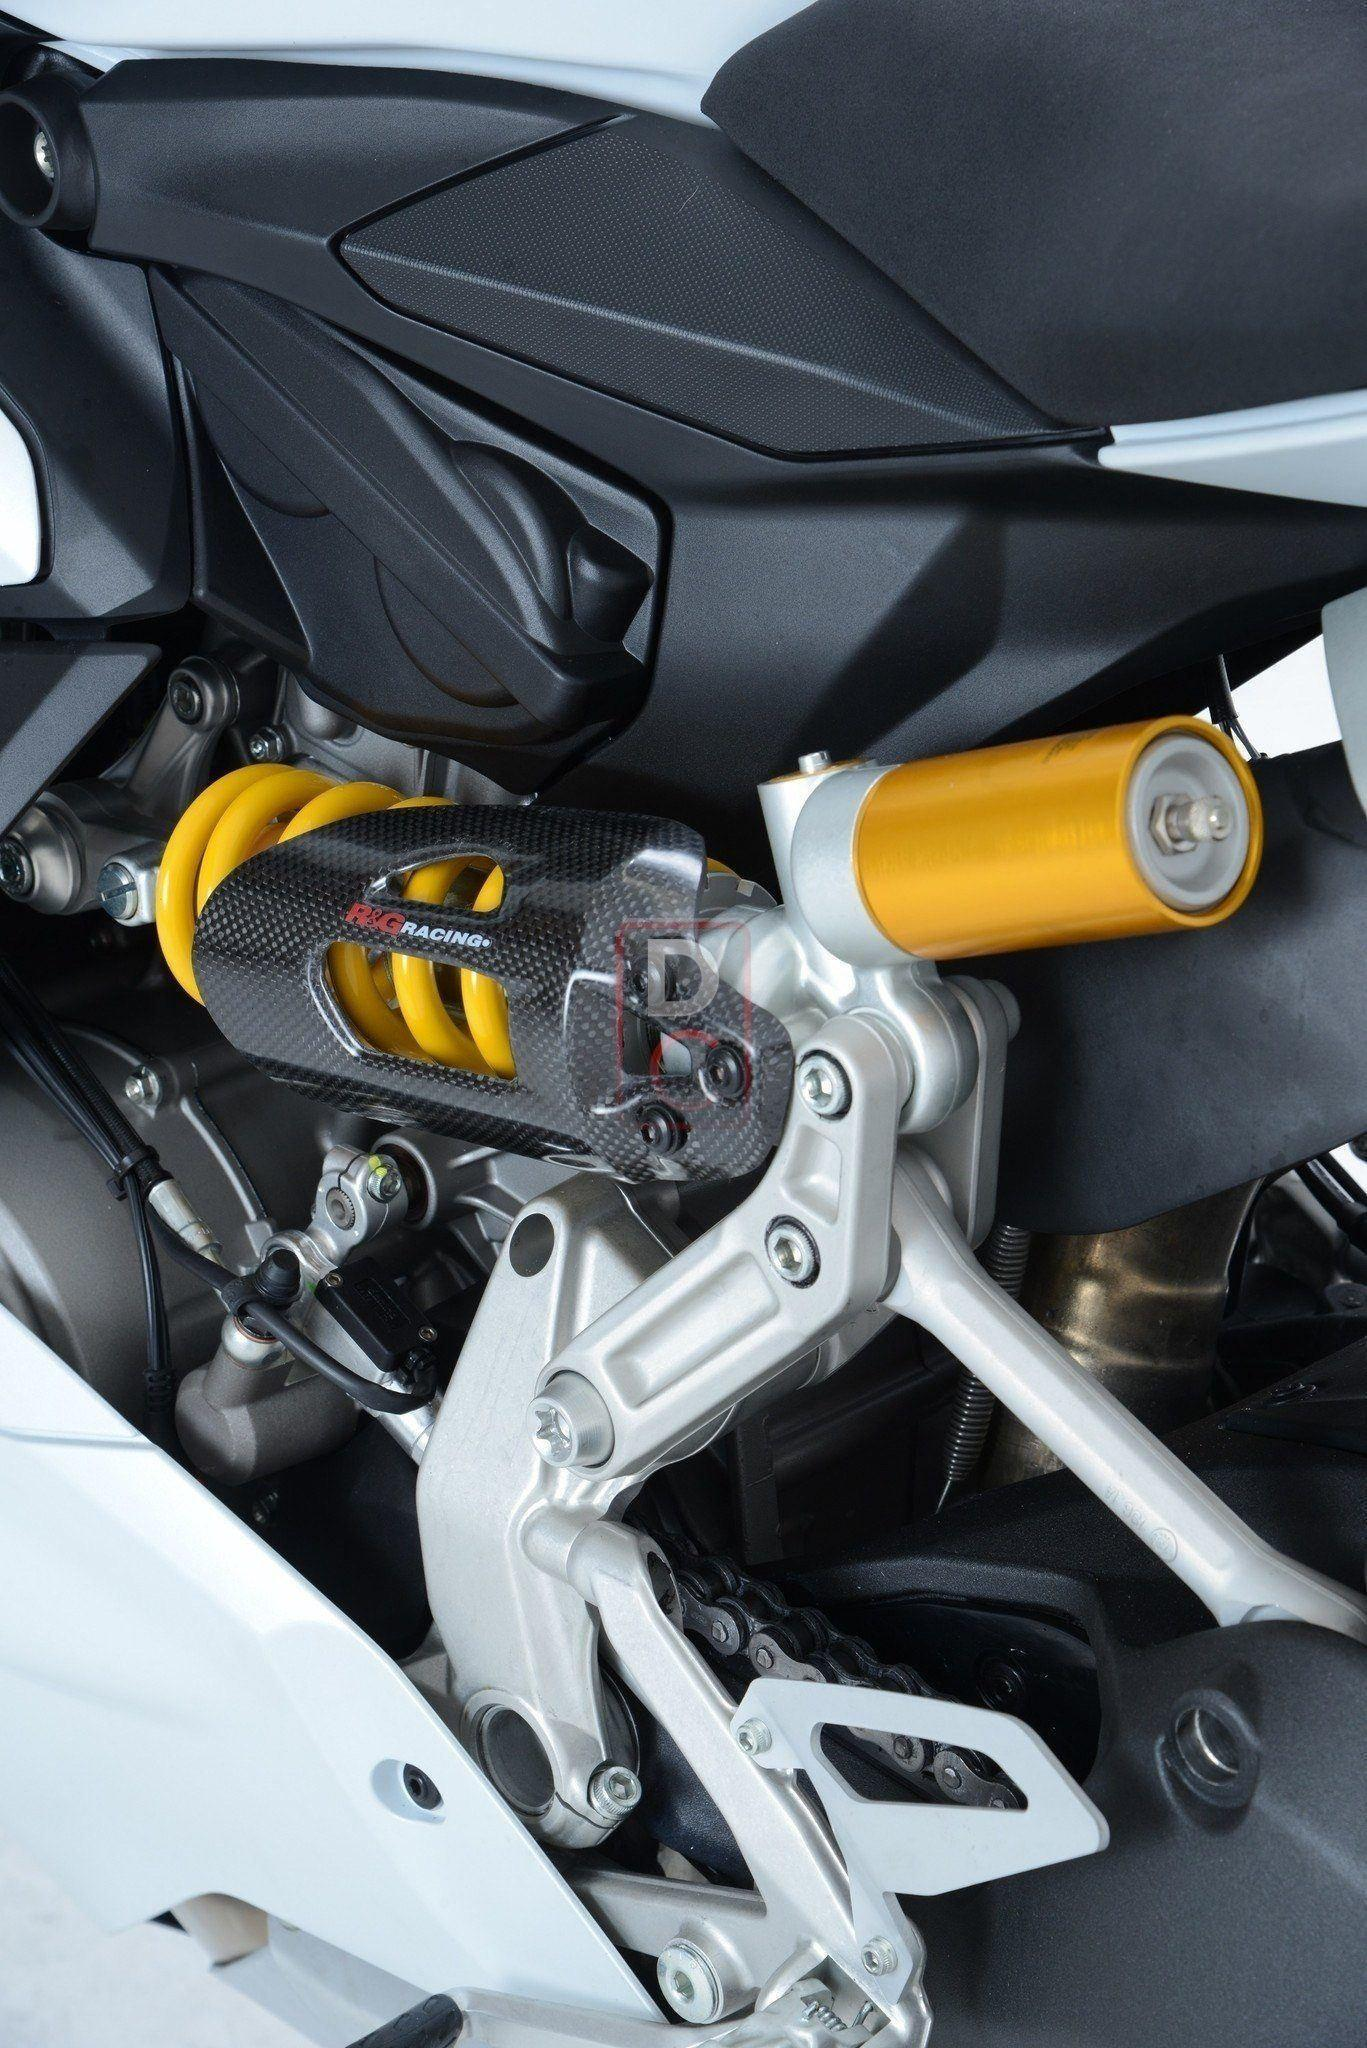 Ducati Panigale Carbon Shock Cover | Quality Carbon Fiber Cover by R&G